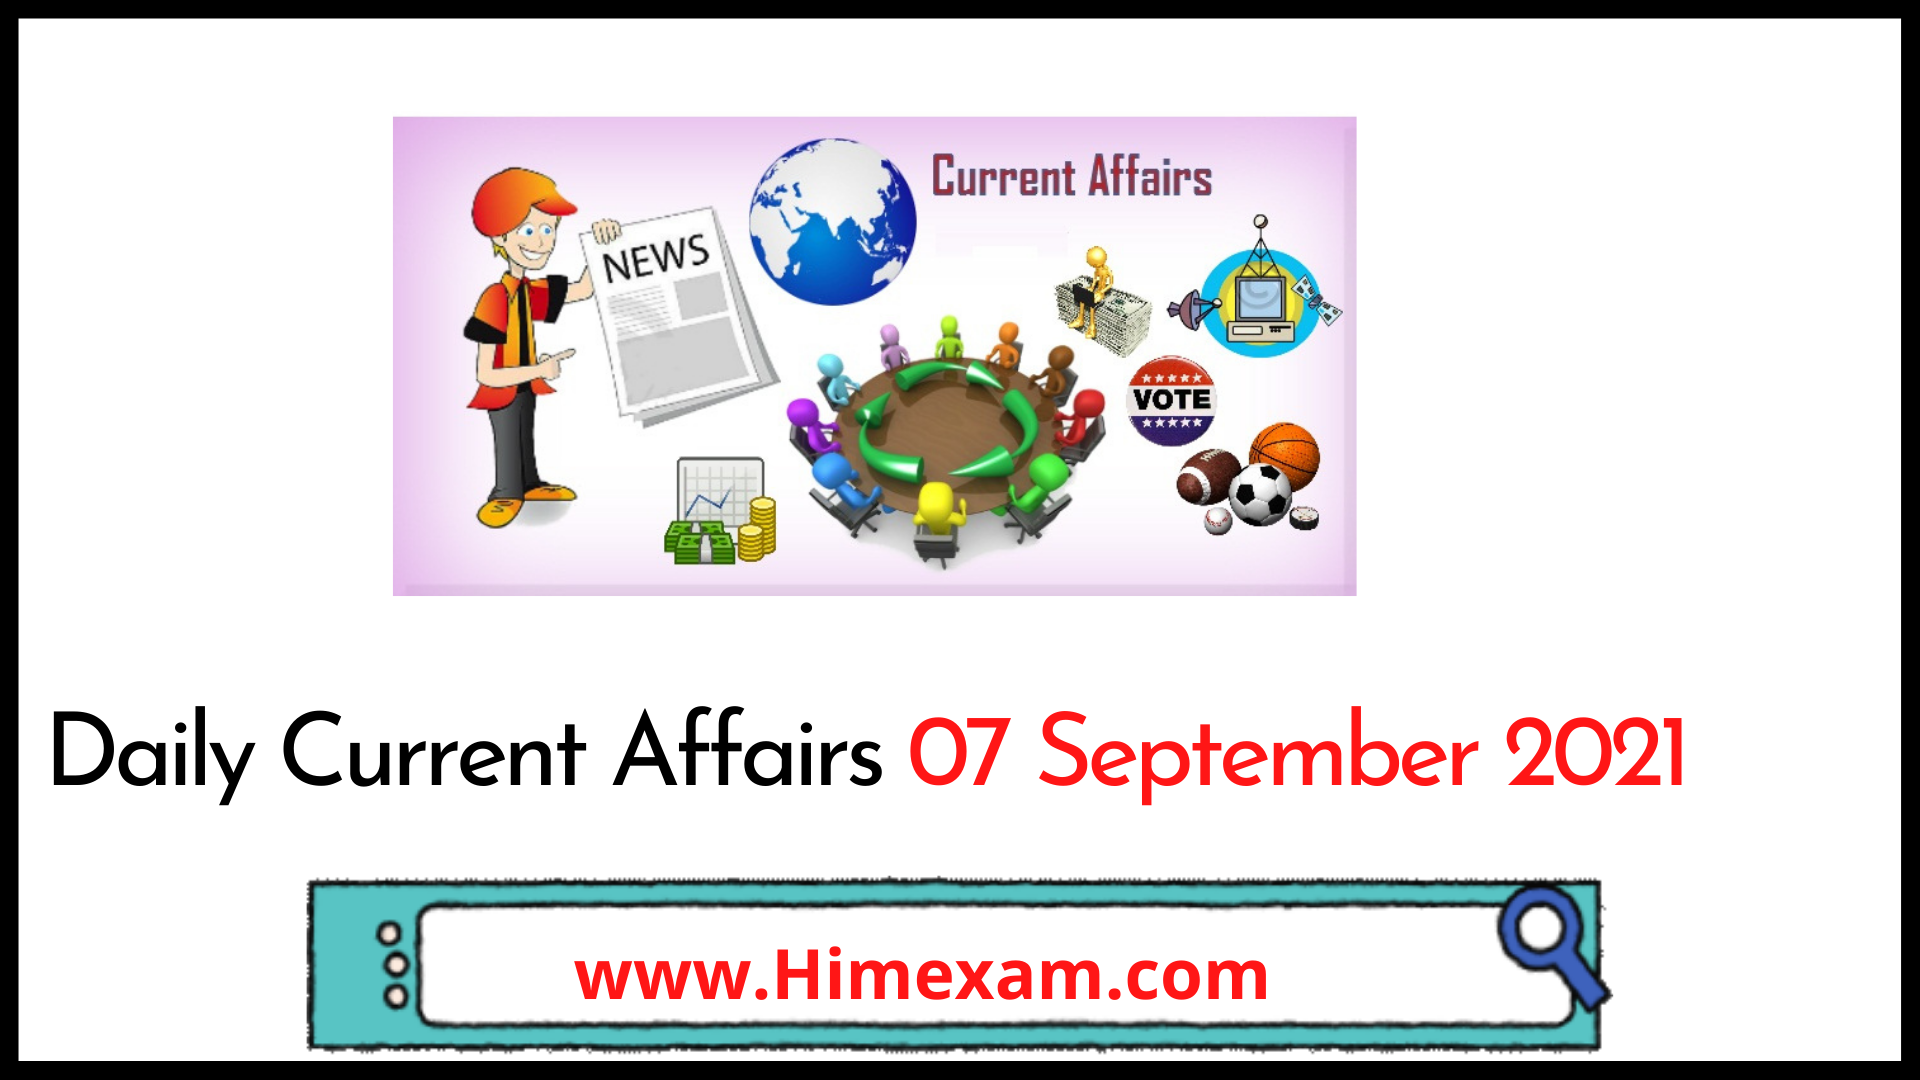 Daily Current Affairs 07 September 2021